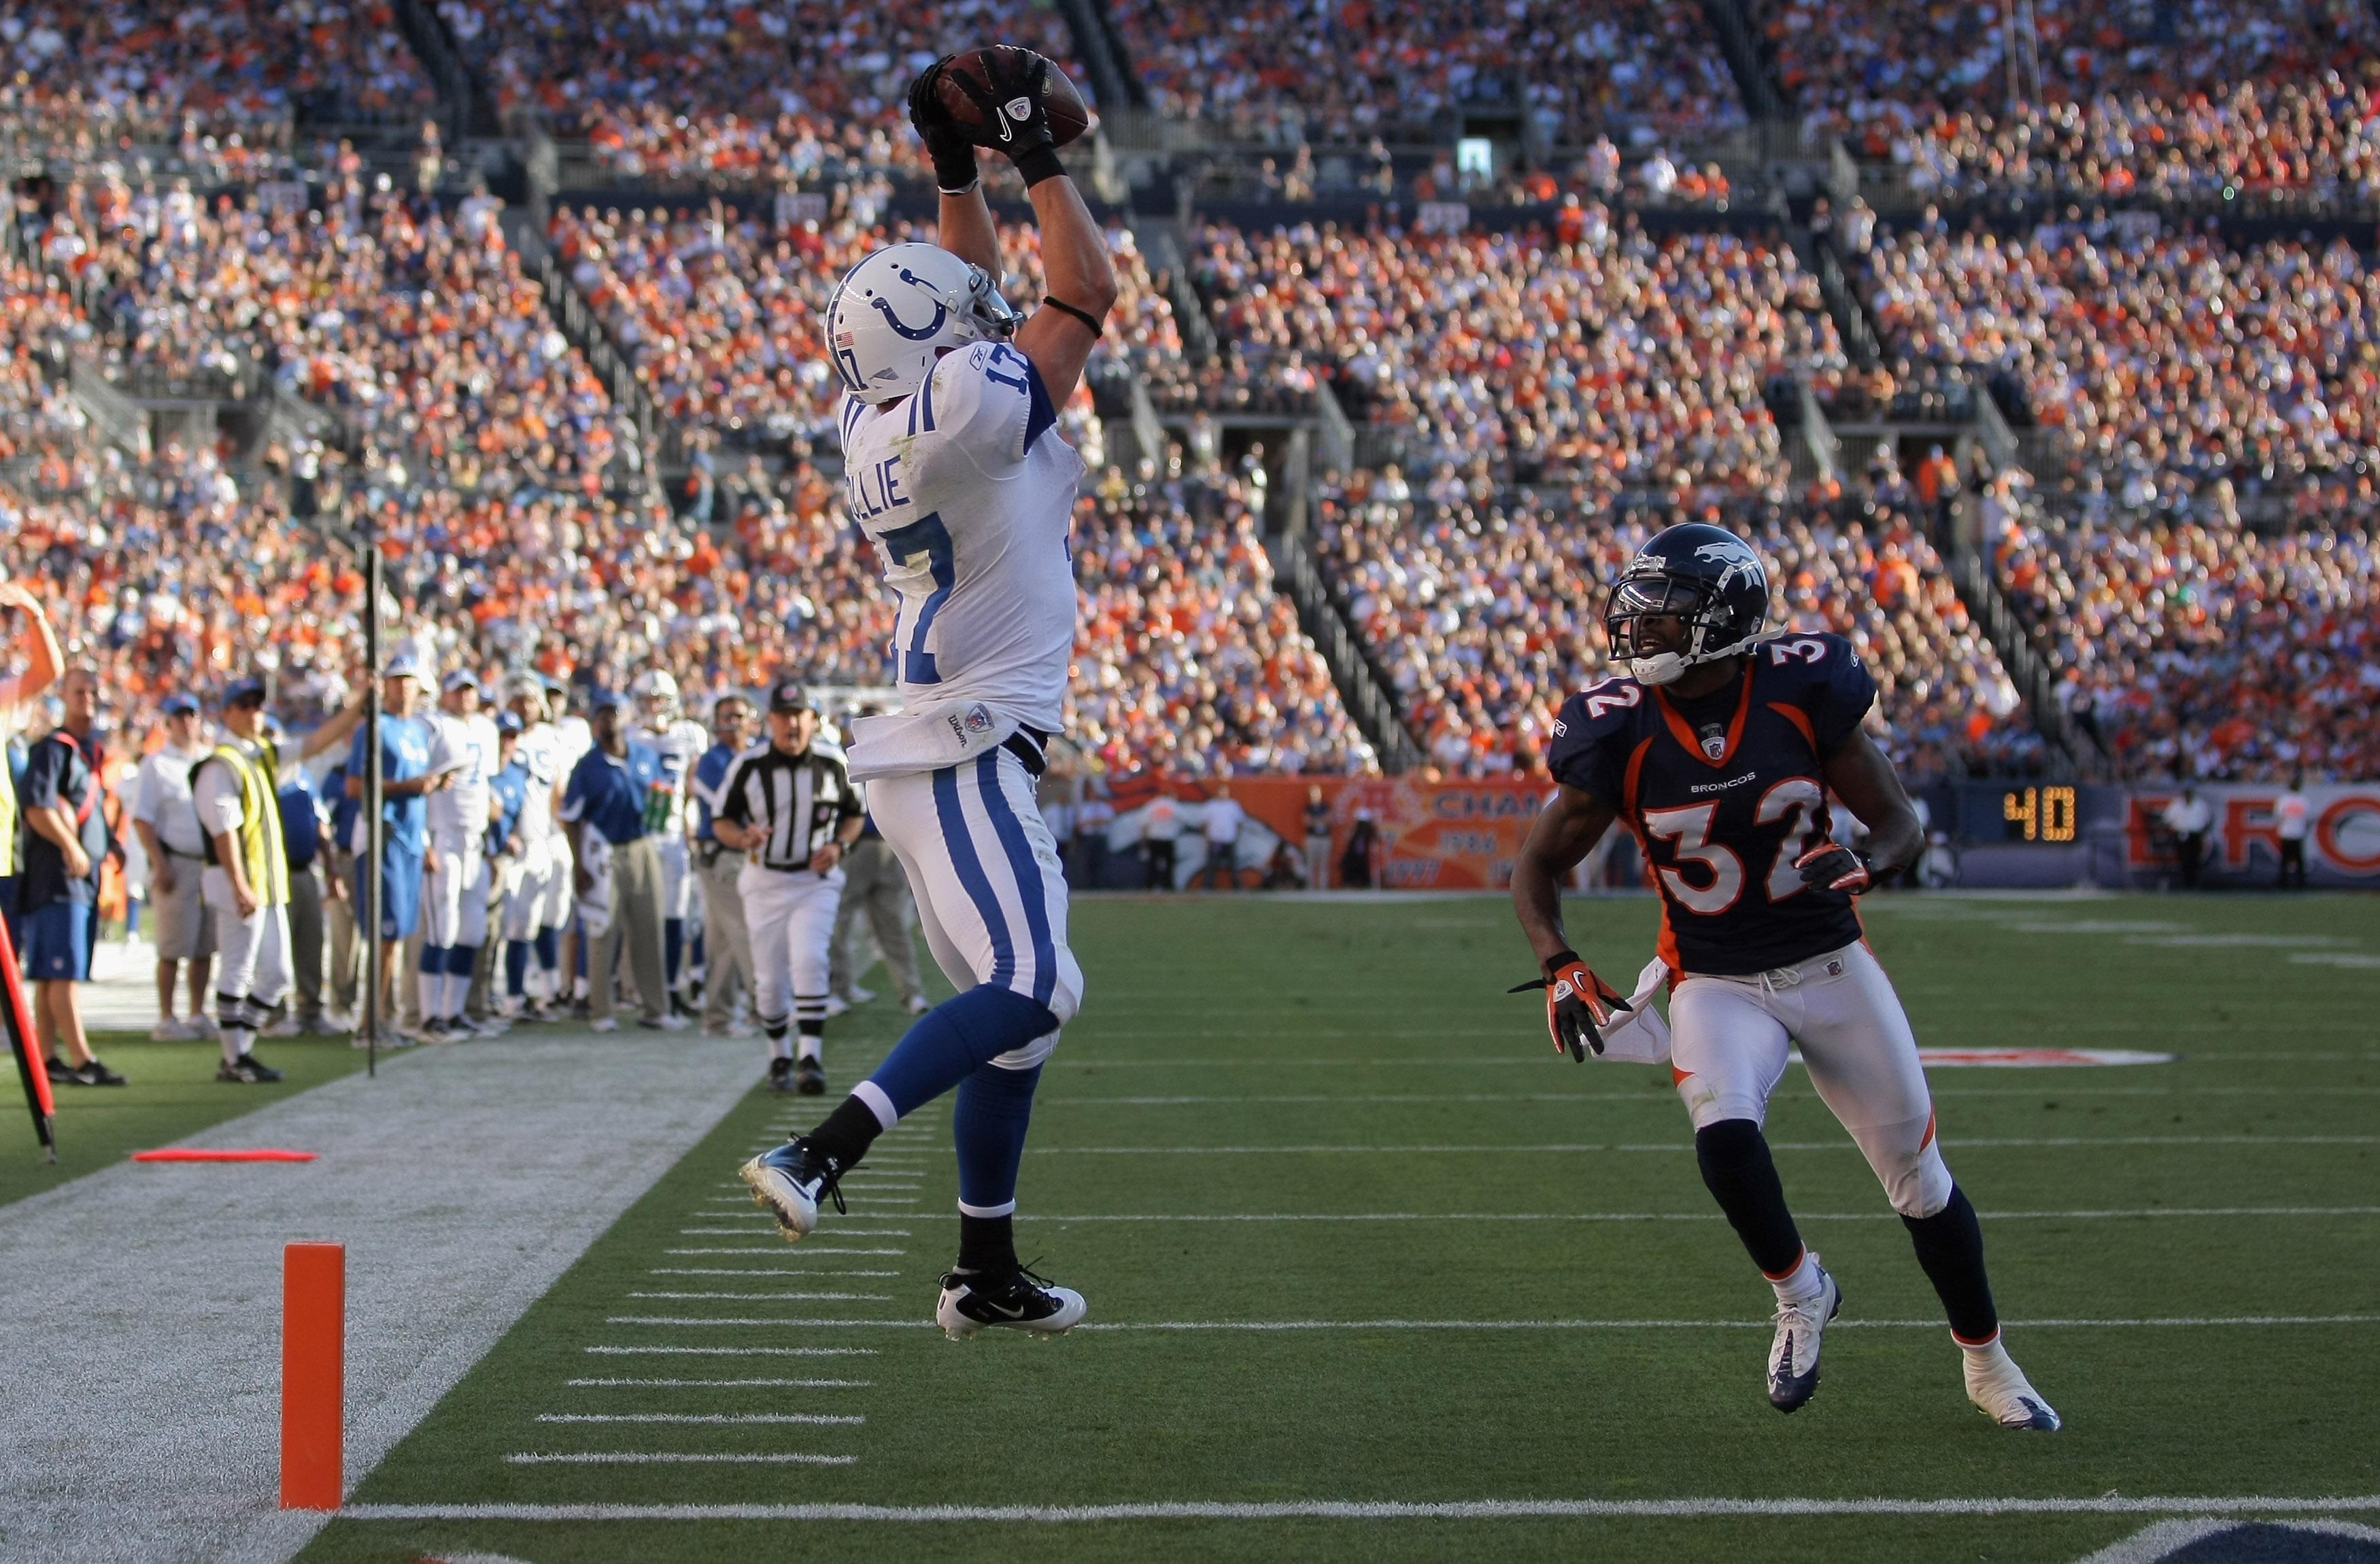 DENVER - SEPTEMBER 26:  Wide receiver Austin Collie #17 of the Indianapolis Colts makes a 23 yard touchdown reception in the fourth quarter as Perrish Cox #32 of the Denver Broncos defends at INVESCO Field at Mile High on September 26, 2010 in Denver, Col